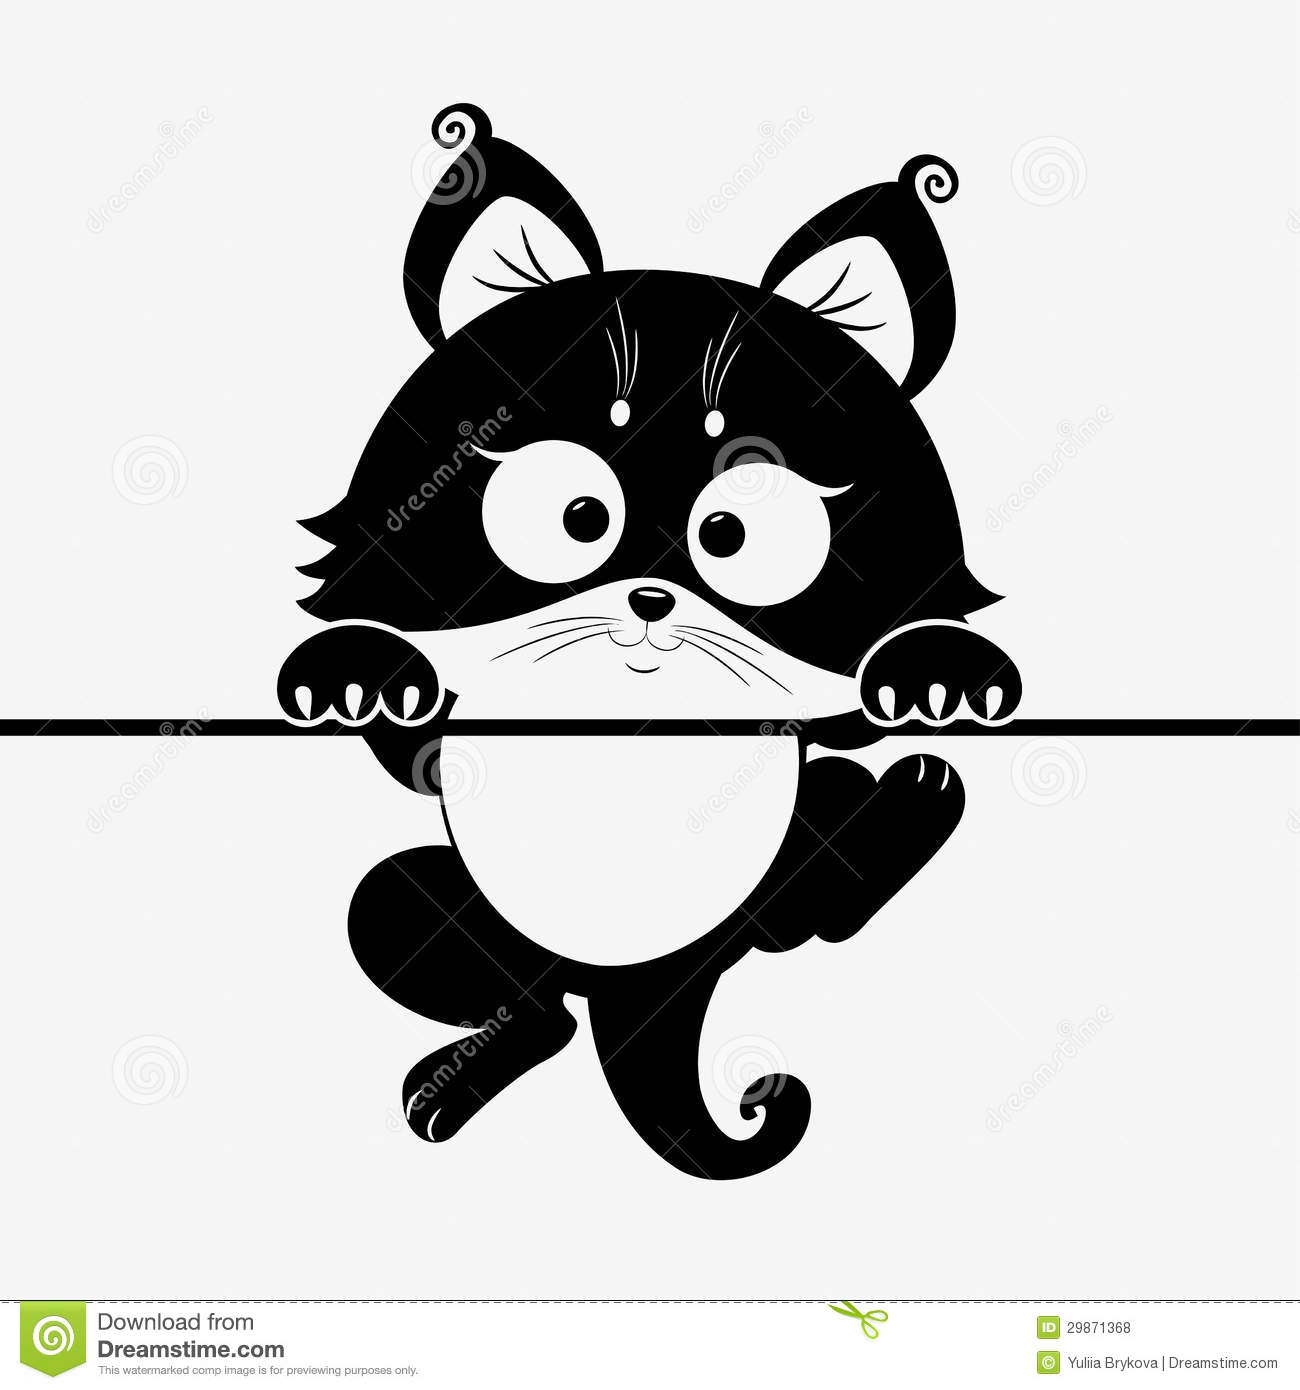 Kitten Stock Vector Illustration Of Outline Isolated